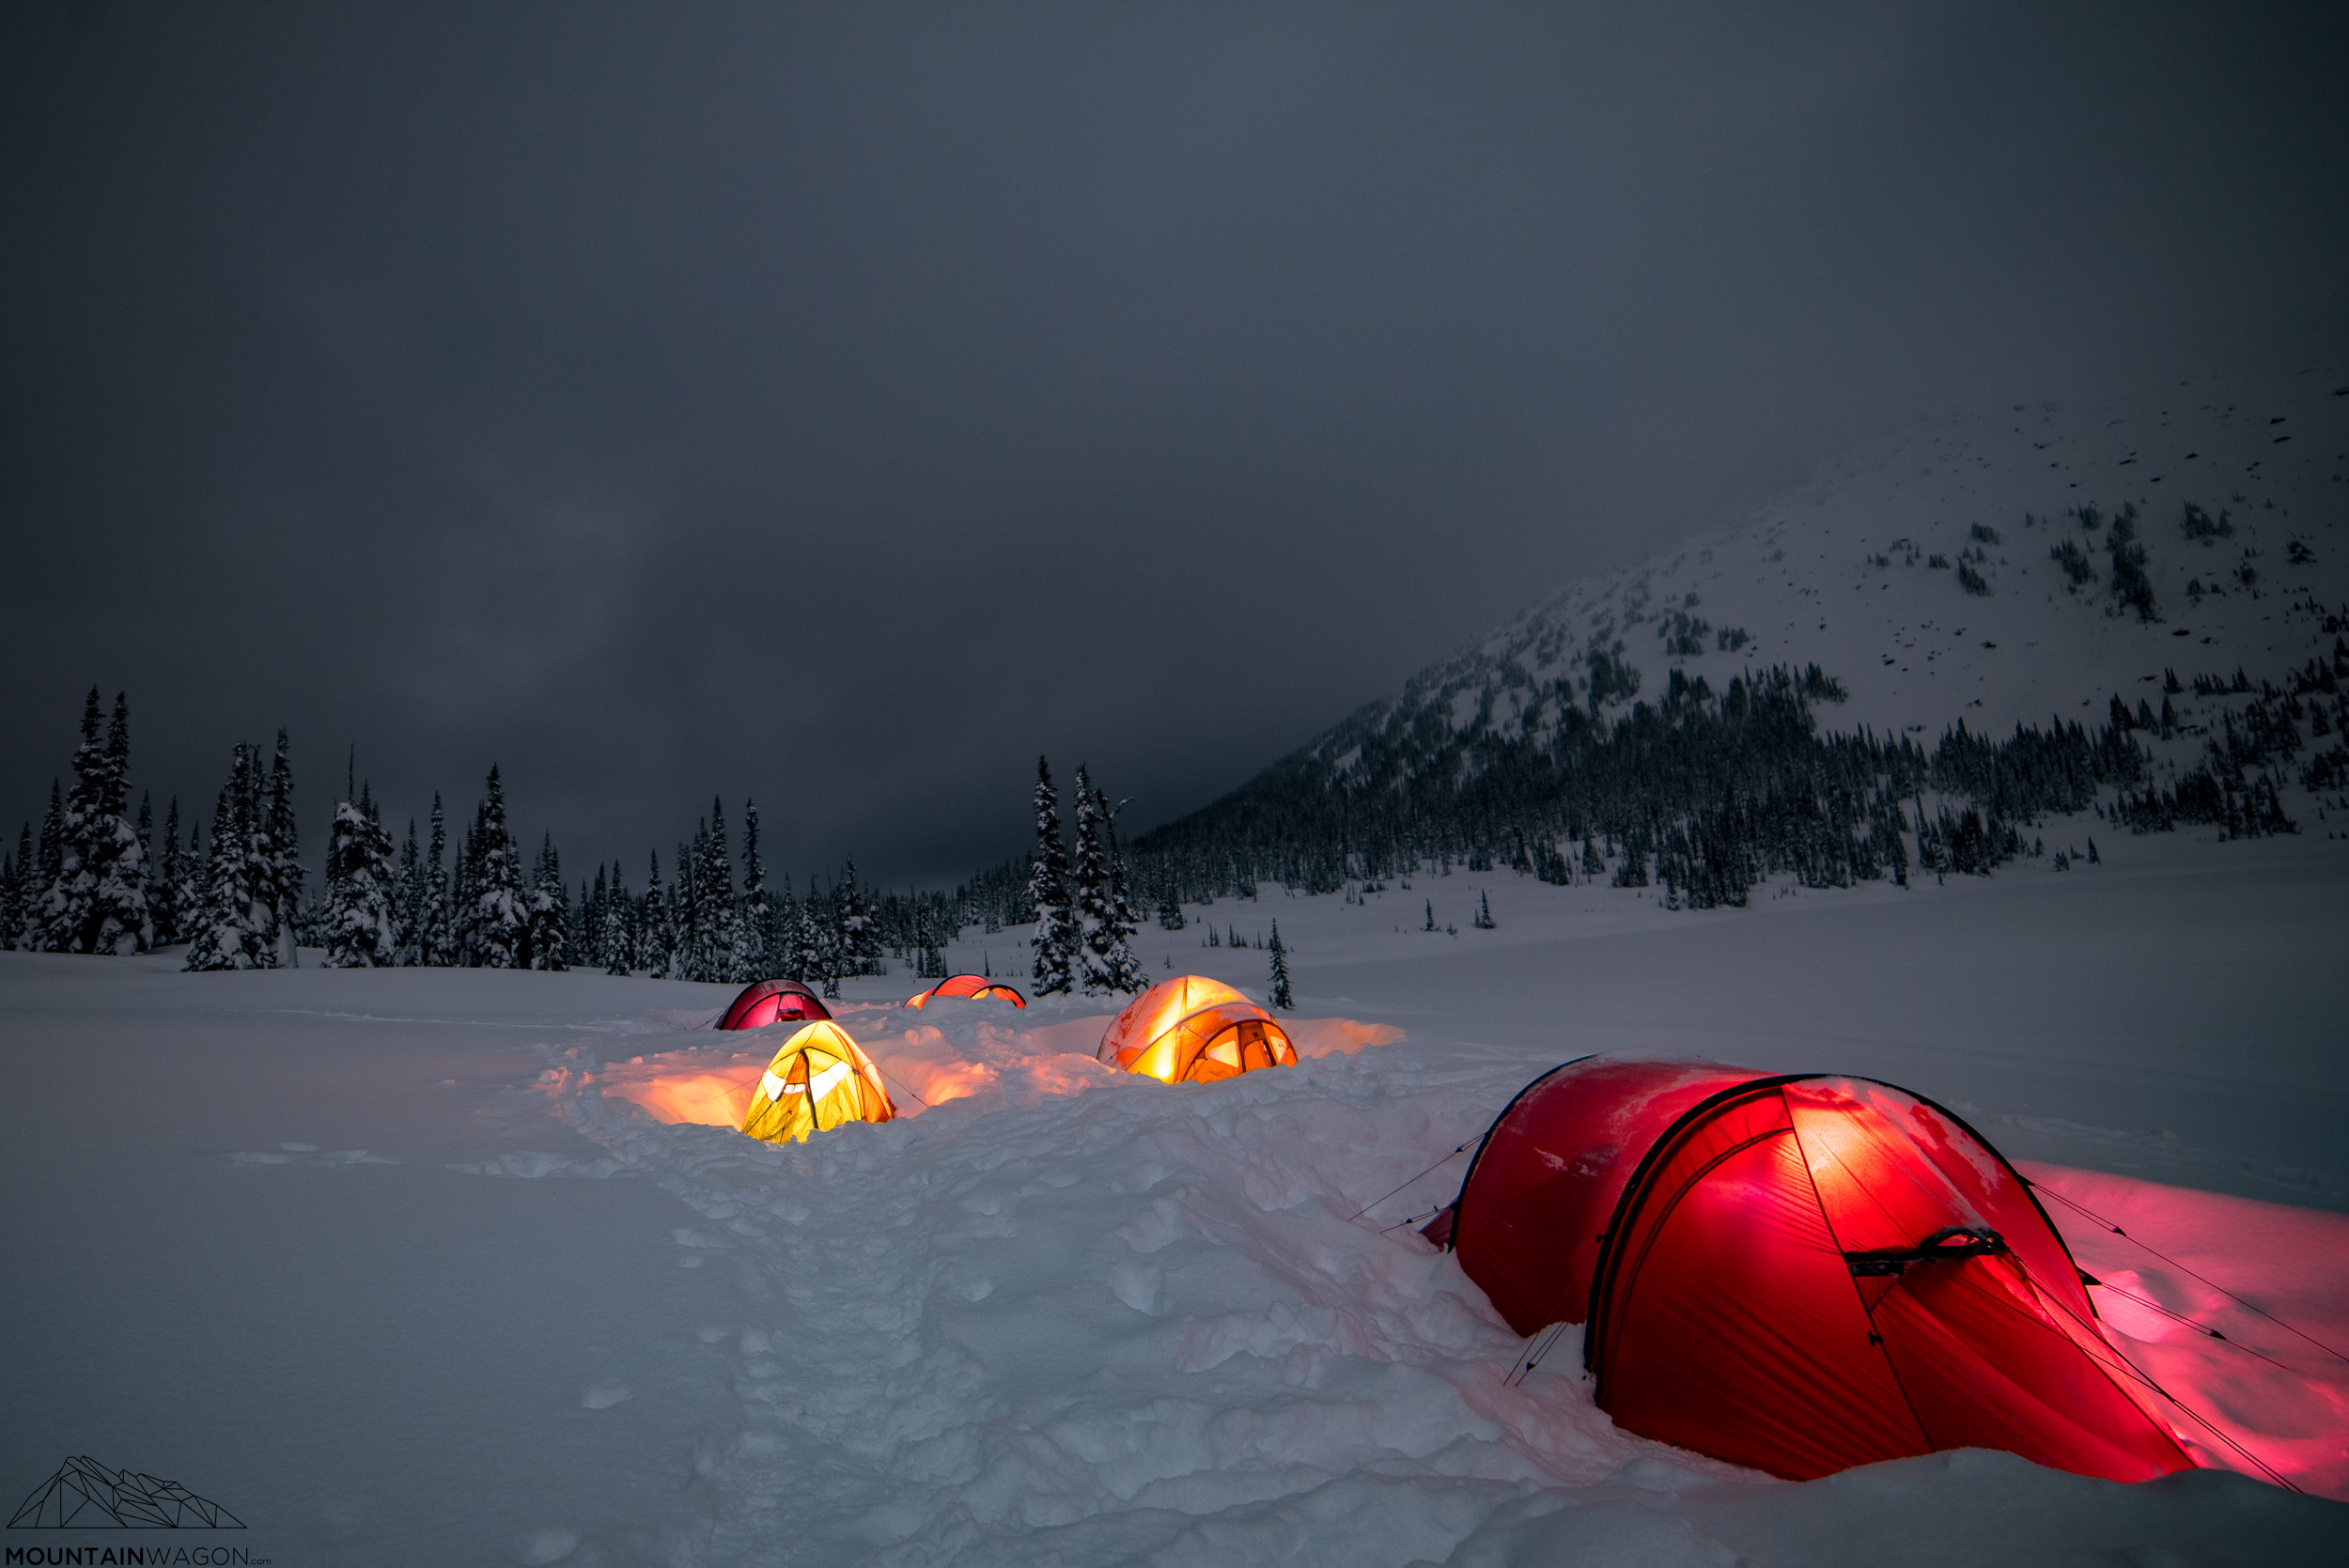 Night time descends upon camp.